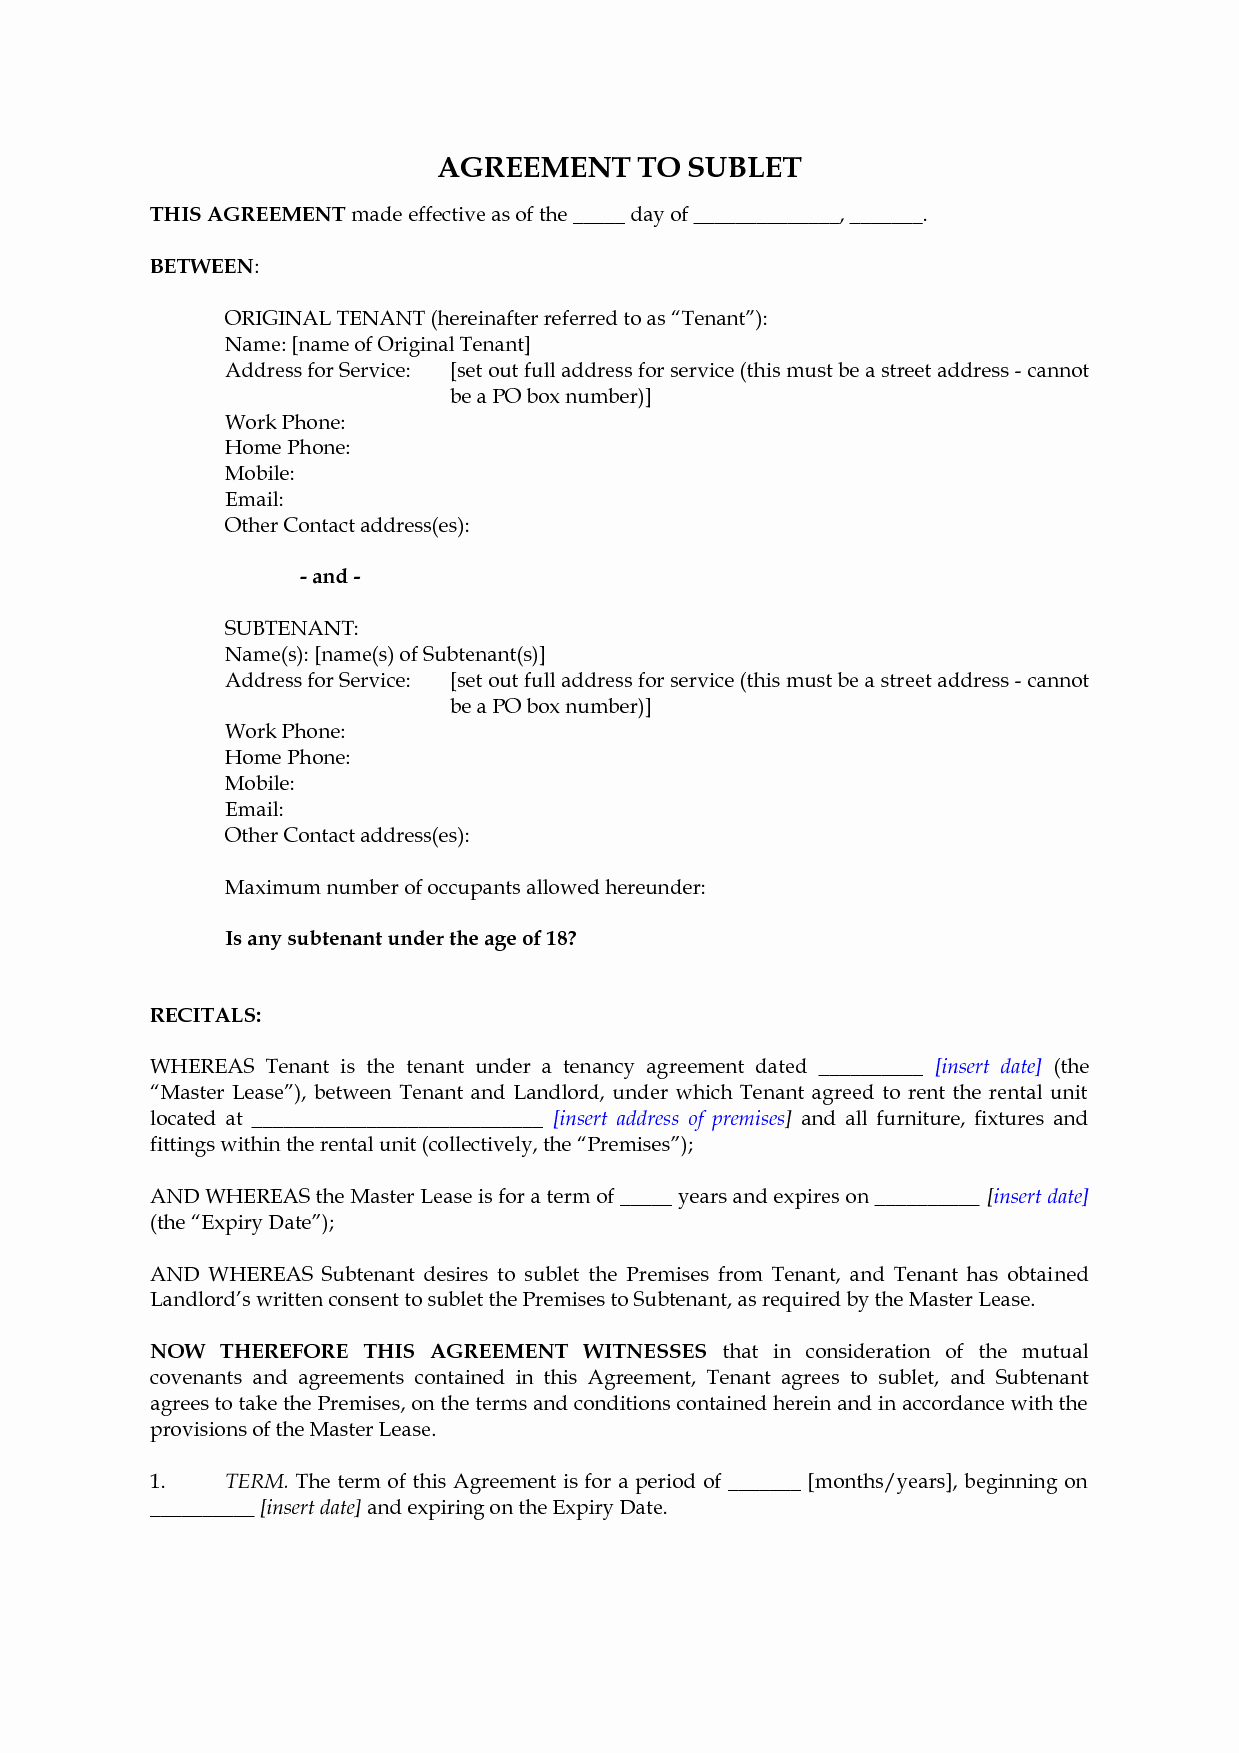 Subletting Lease Agreement Template Inspirational Sublet Agreement Template Bamboodownunder